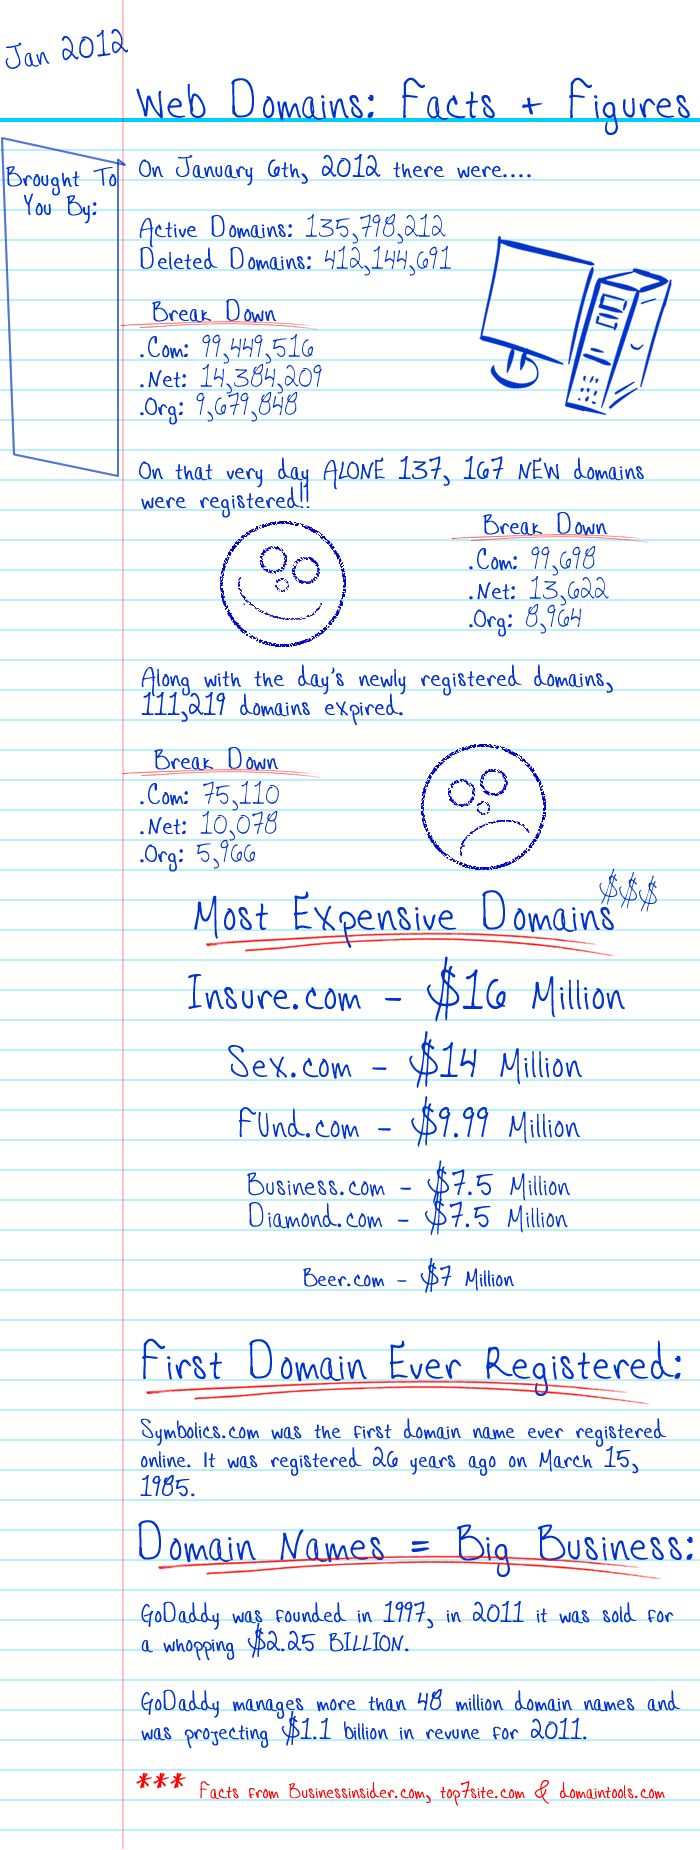 Web Domain Facts & Figures – Do You Know What the Most Expensive Domain Is?   Blogelina